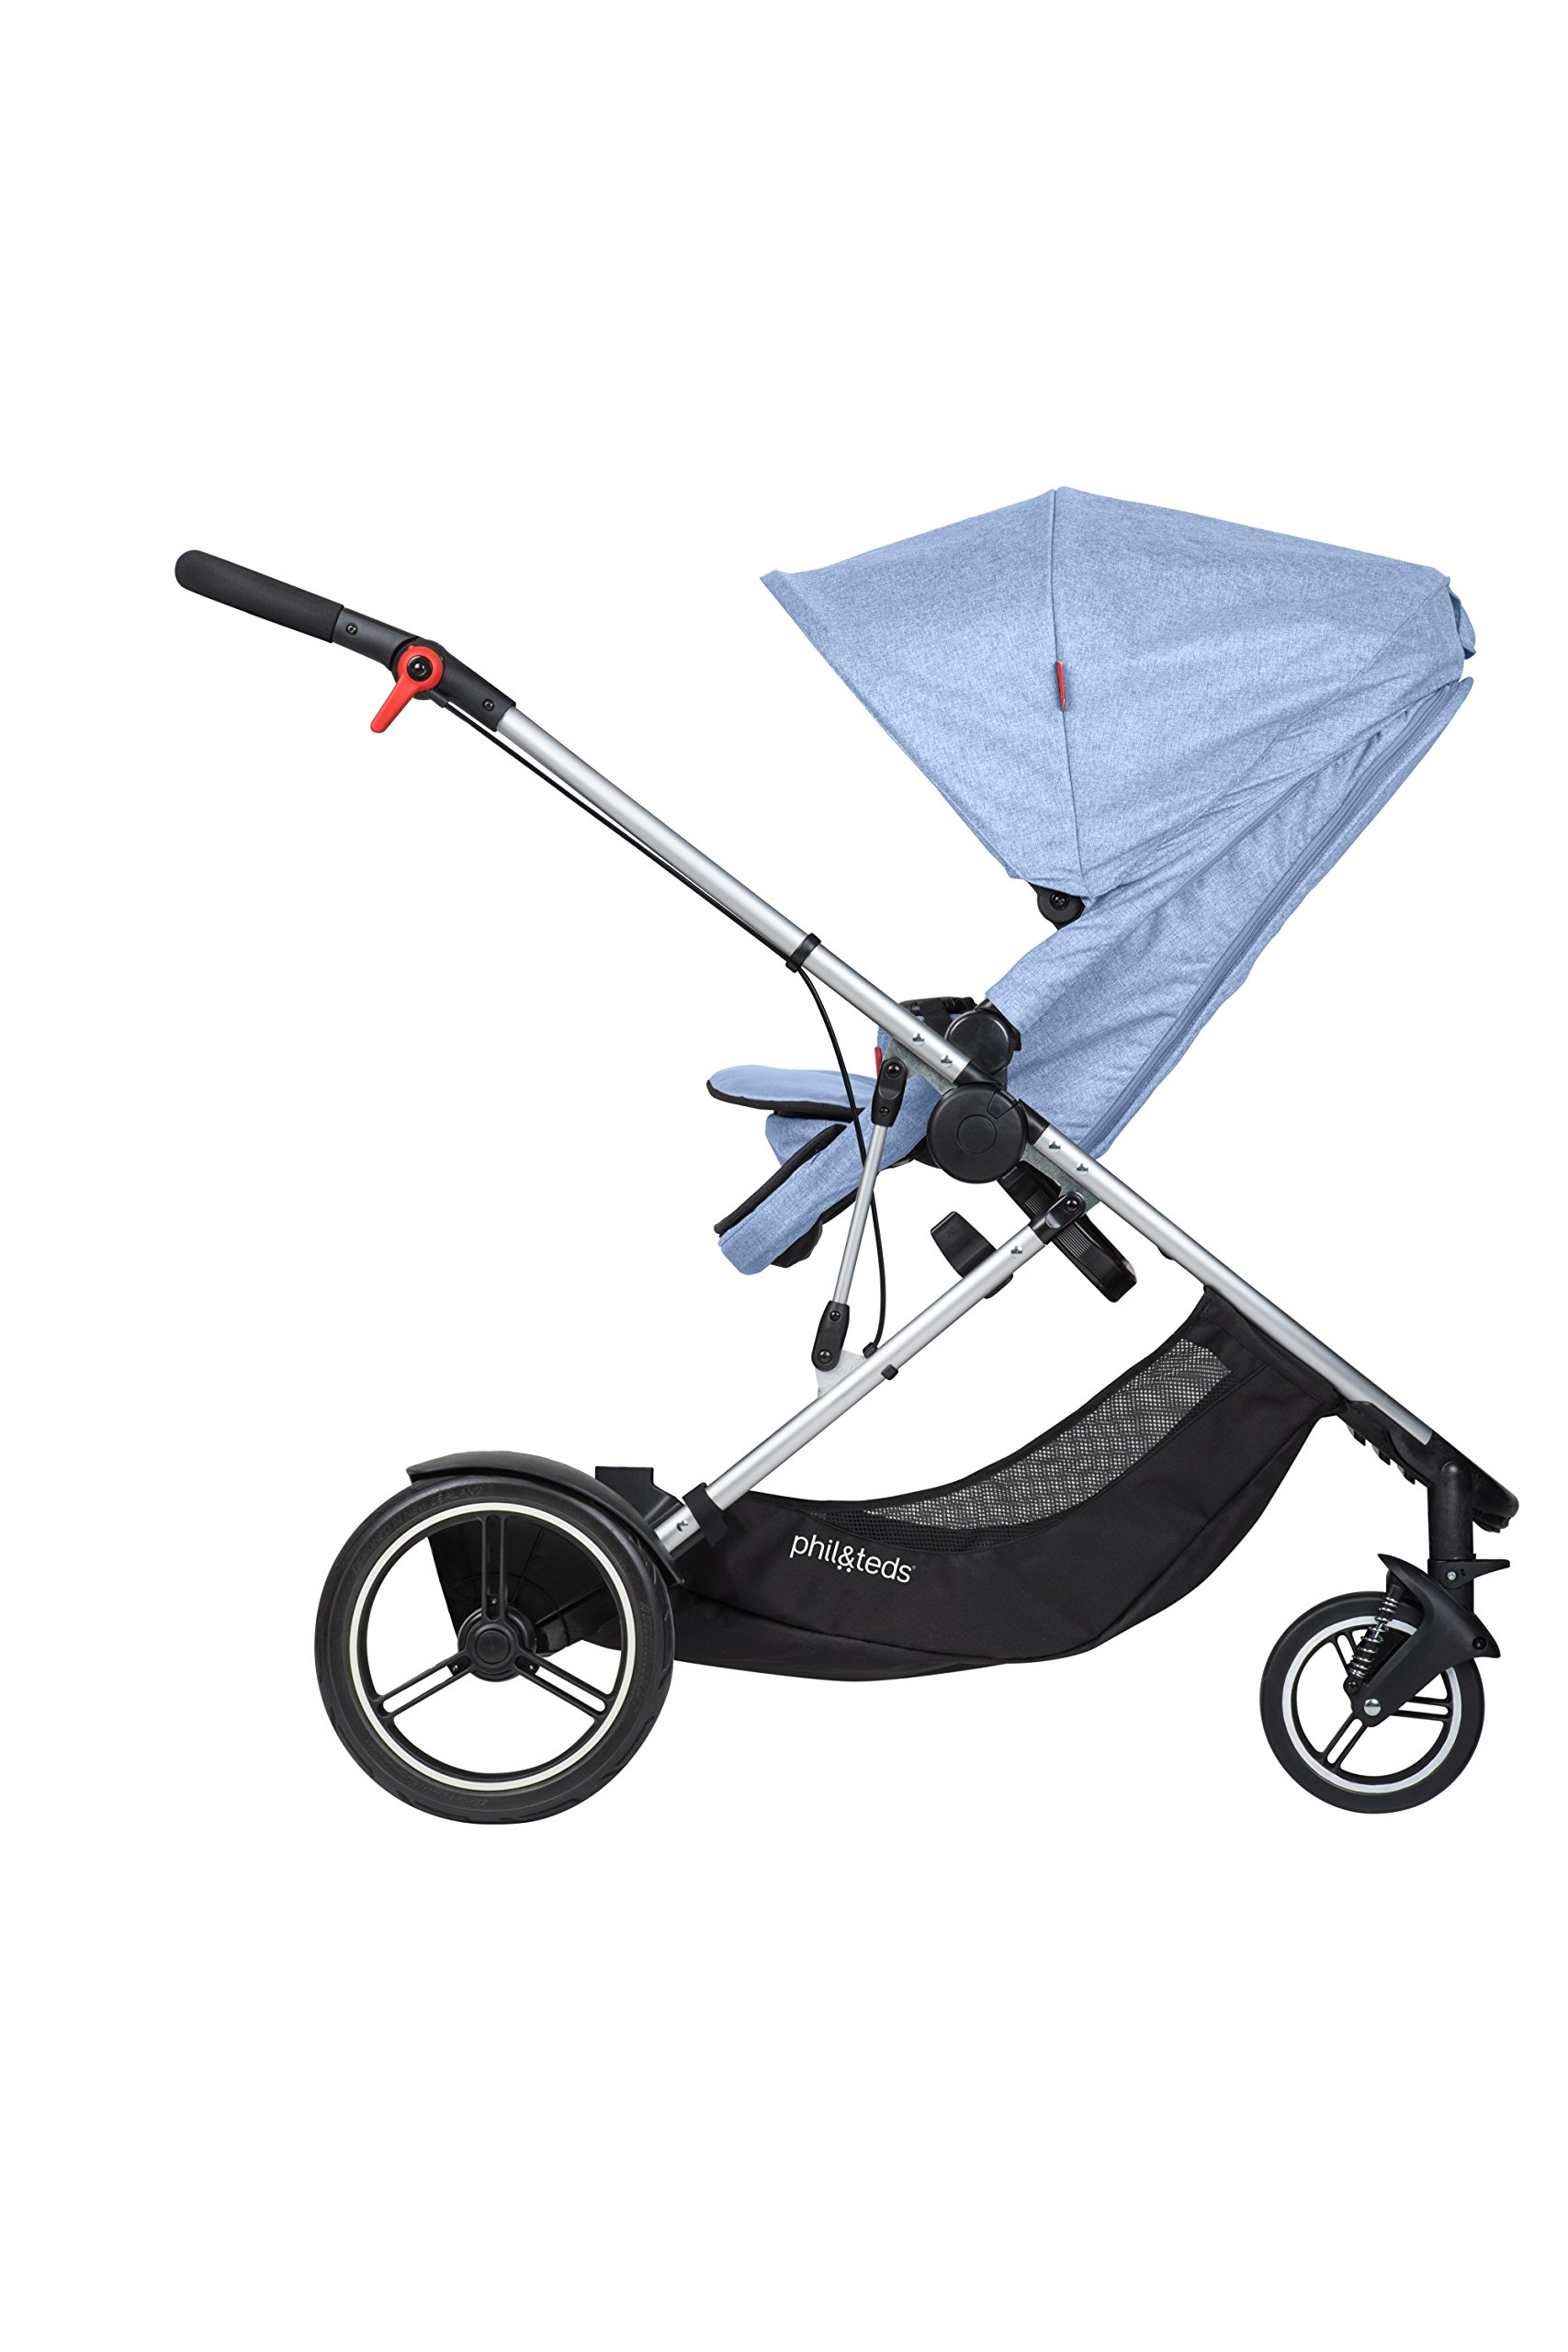 phil&teds Voyager Buggy Pushchair, Blue phil&teds 4-in-1 modular seat with four modes: parent facing, forward facing, lay flat bassinet (on buggy) and free standing bassinet (off buggy) Revolutionary stand fold with 2 seats on Double kit easily converts to lie flat mode as well 4